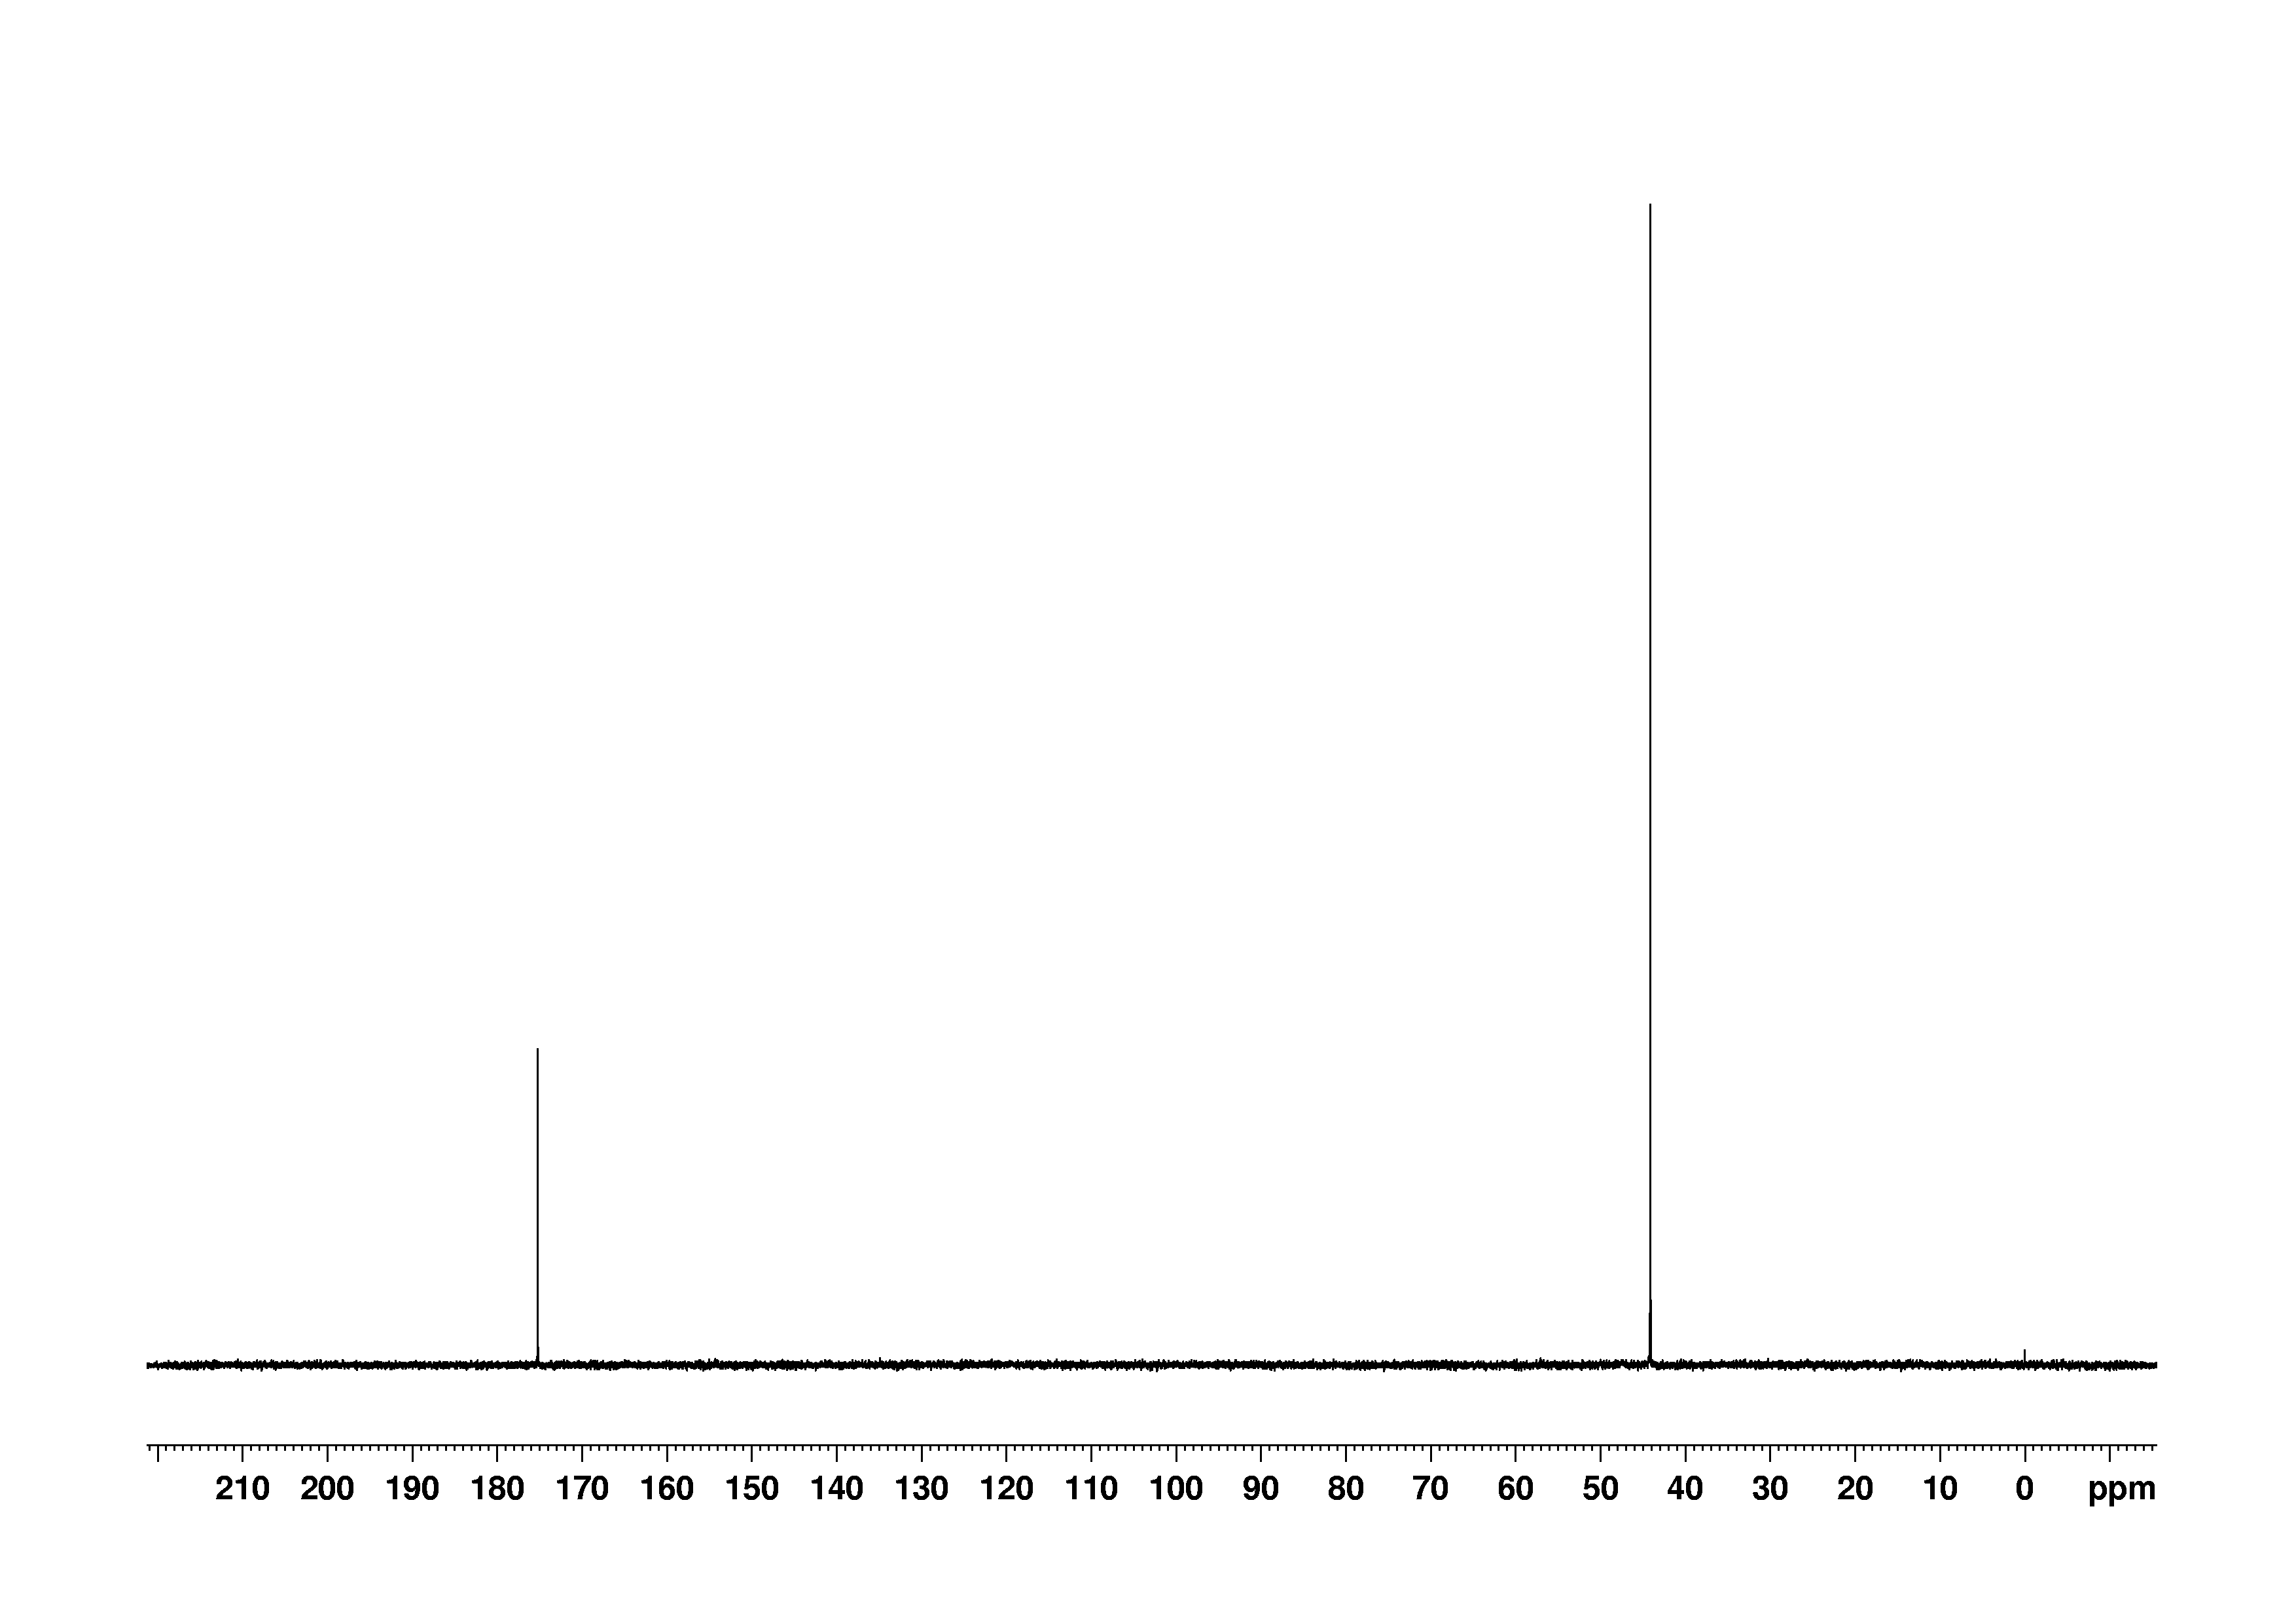 1D 13C, 7.4 spectrum for Glycine